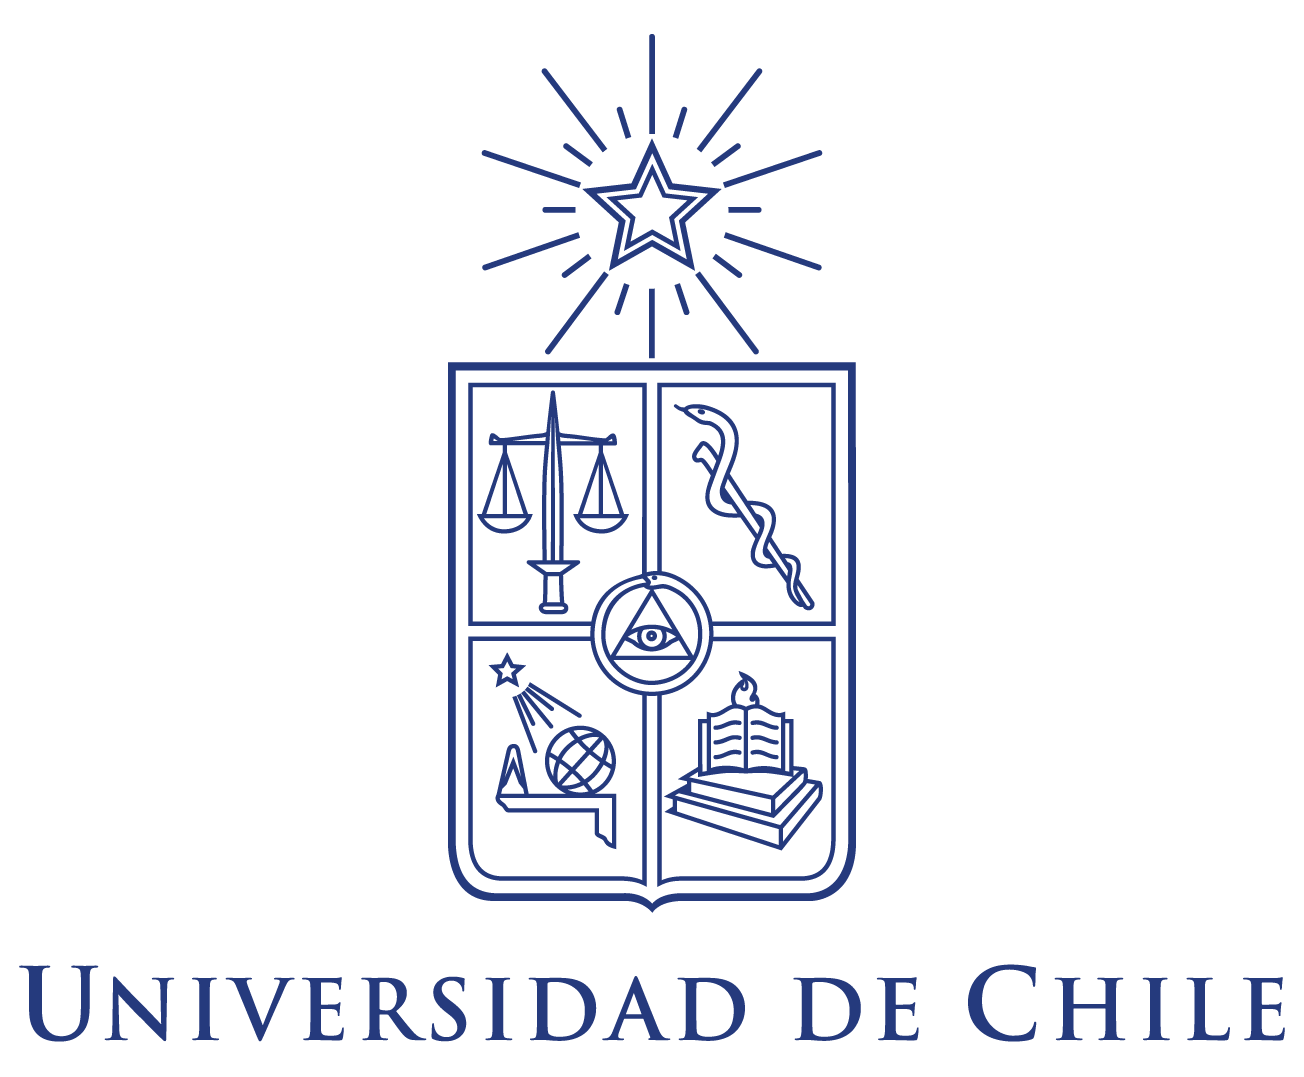 UNIVERSIDADDECHILE.png